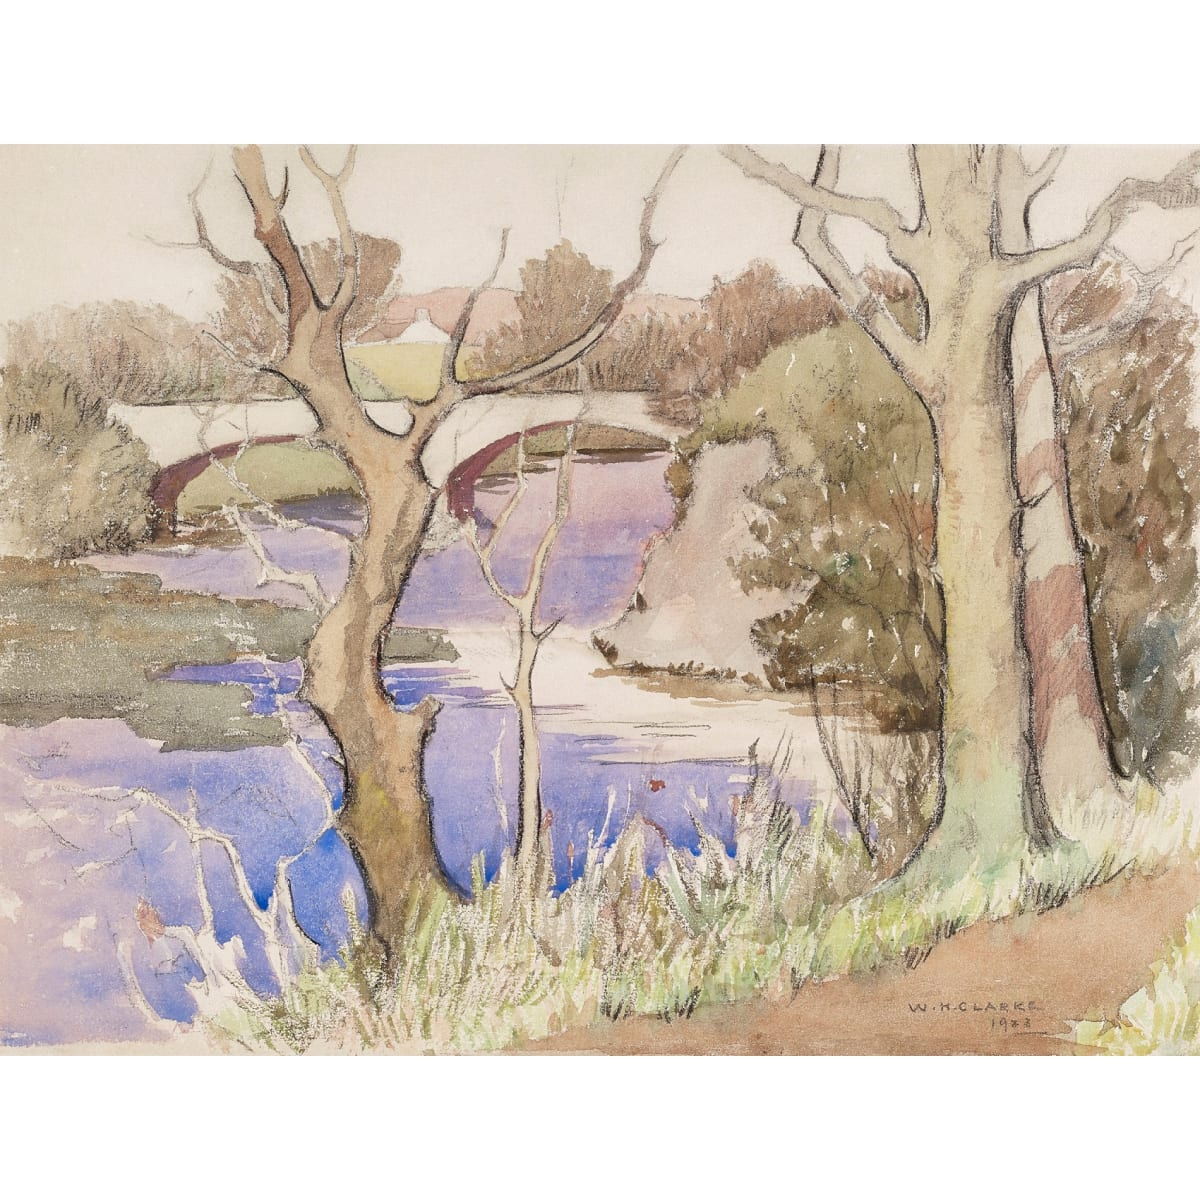 William Hanna Clarke Old Bridge, Tongland, 1923 signed and dated 1923 watercolour 11 x 14 1/2 inches